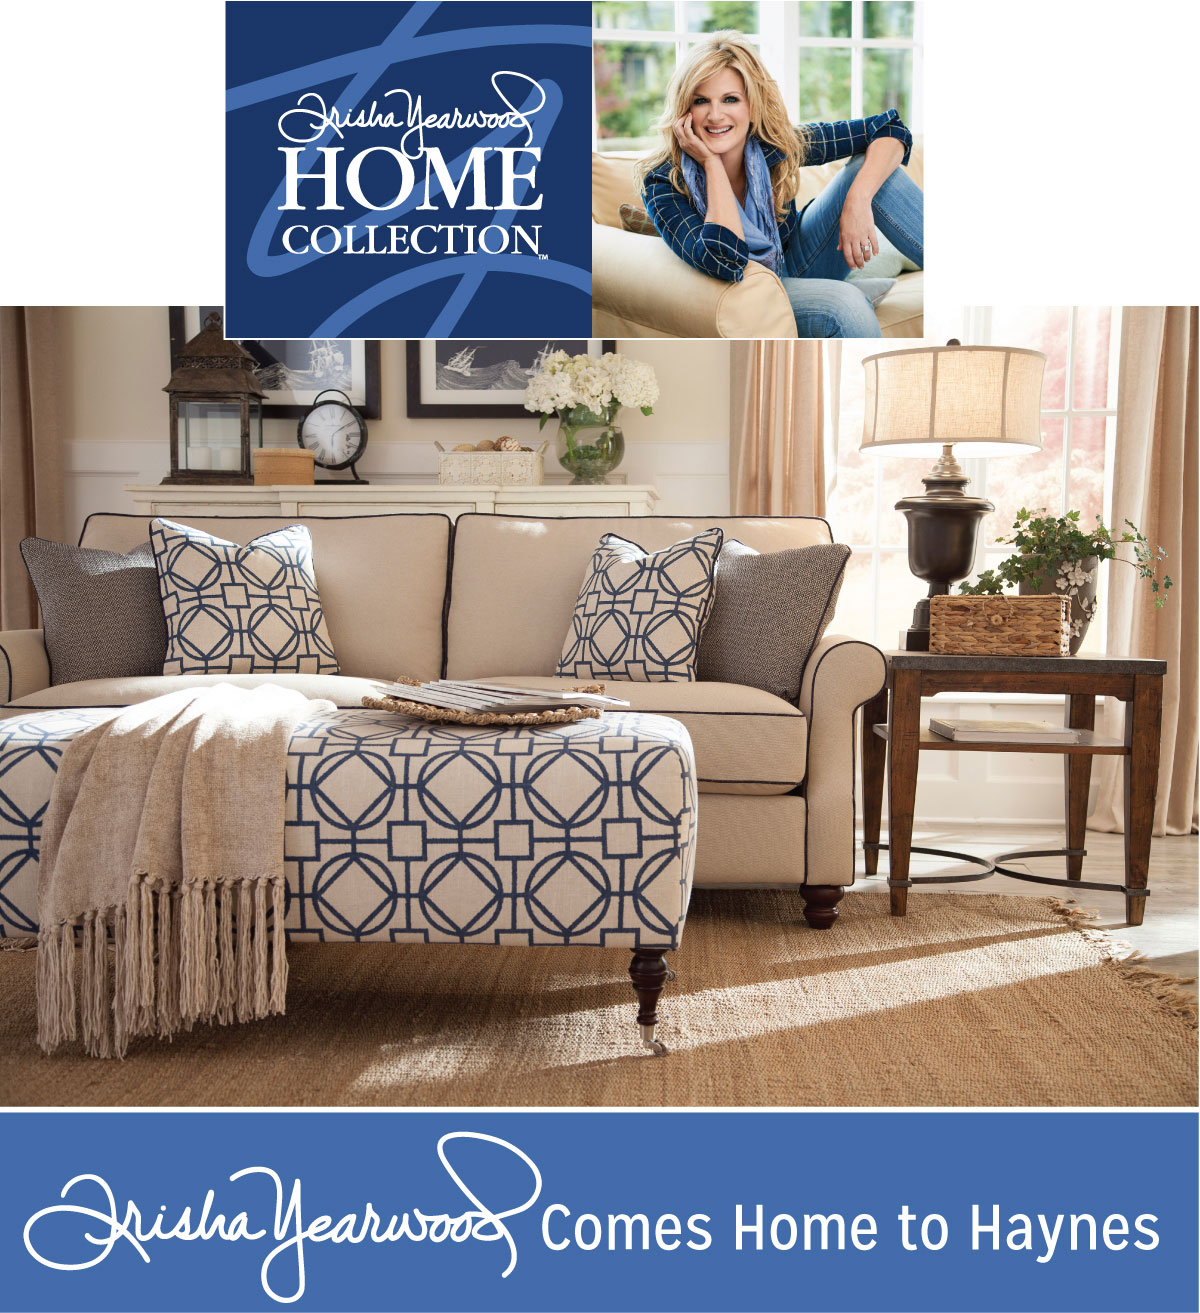 Trisha Yearwood Furniture Is Now Being Sold At Haynes